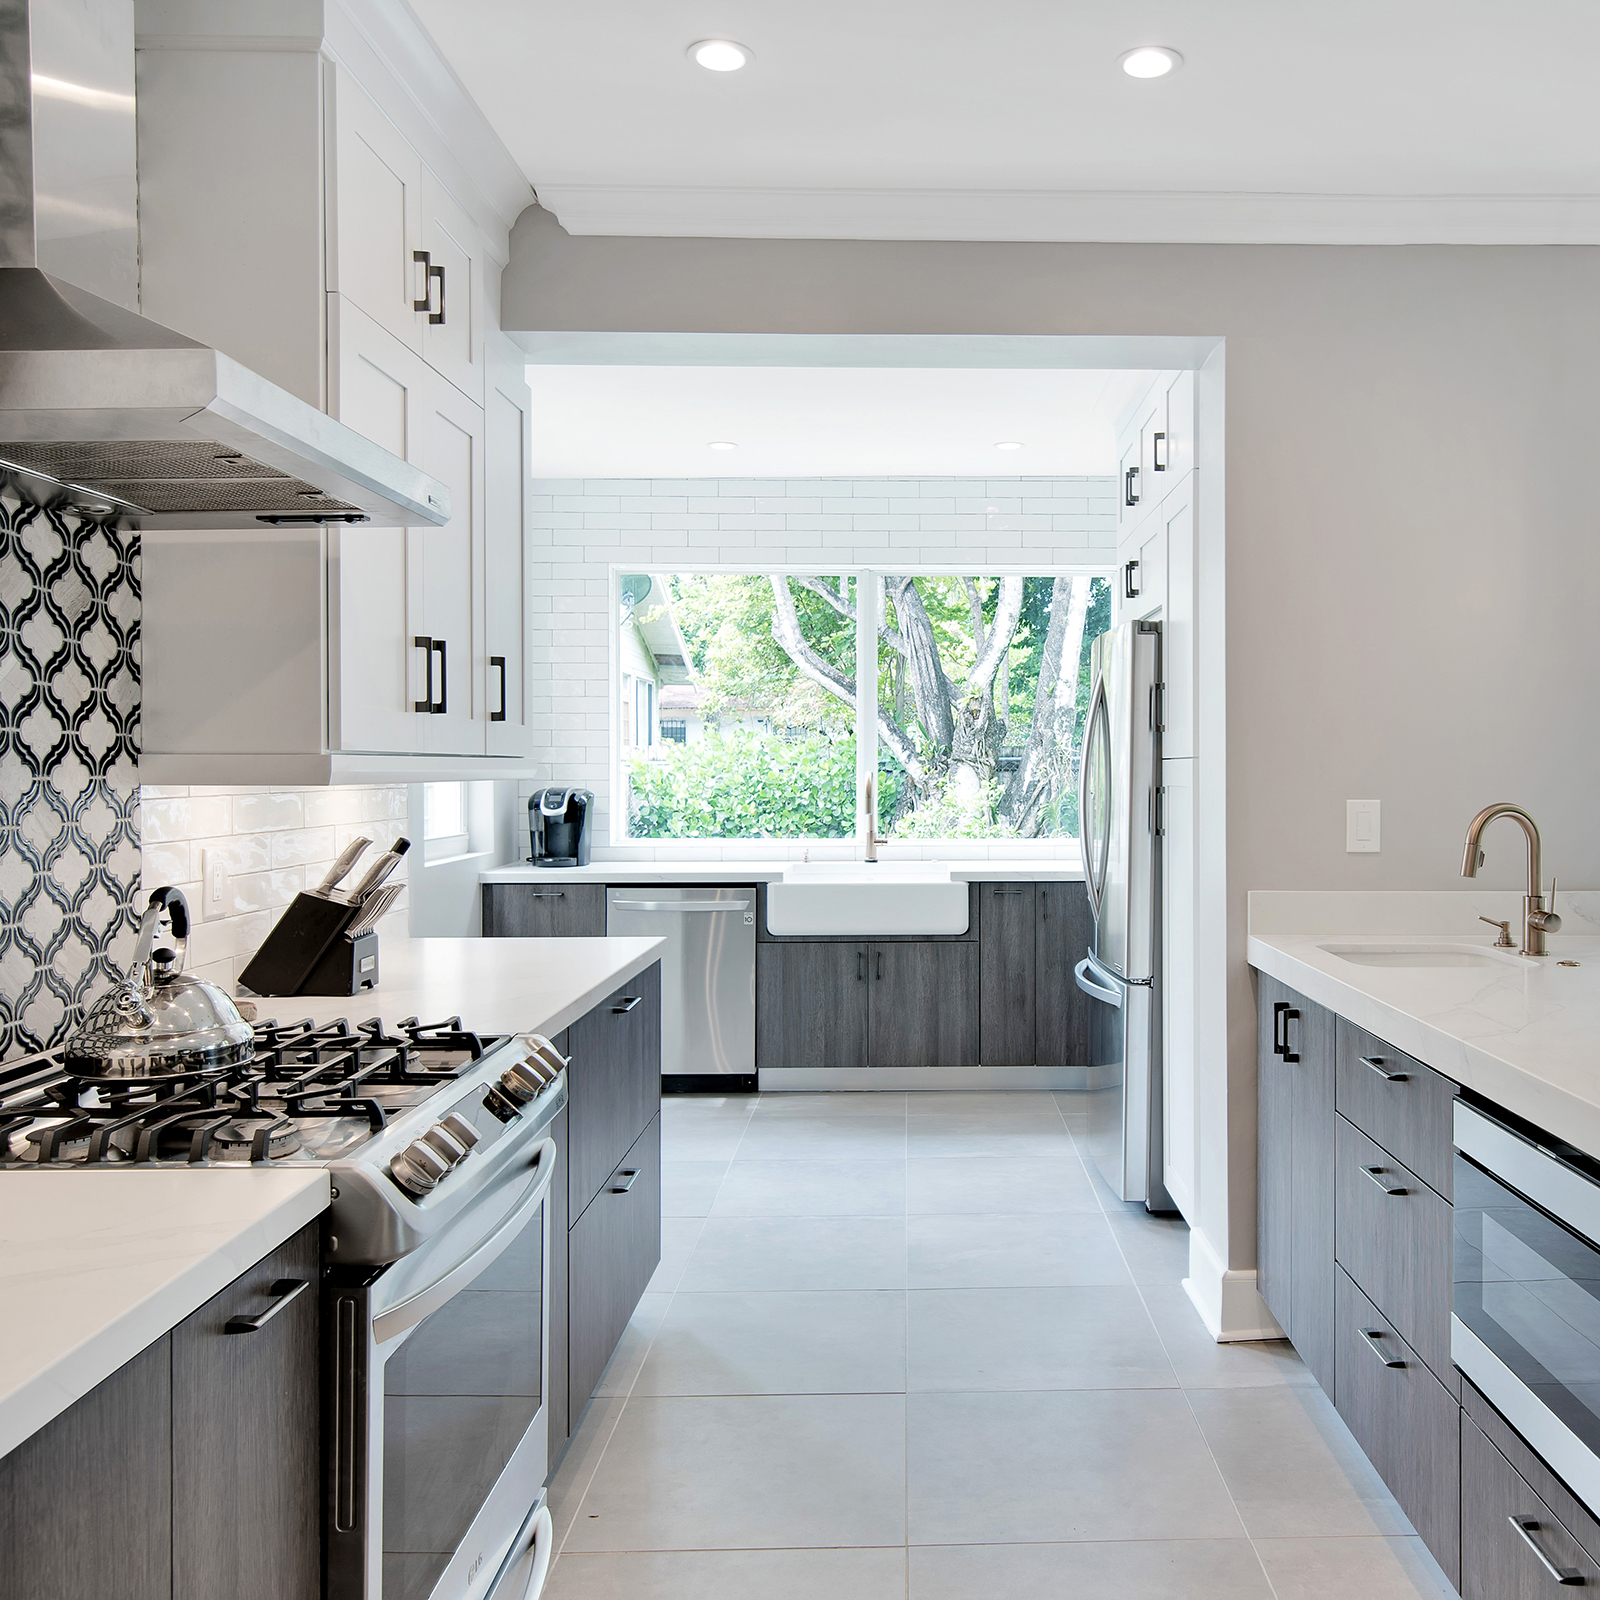 KabCo-Kitchens-arabesco-miami-kitchen-remodel-Thumb4